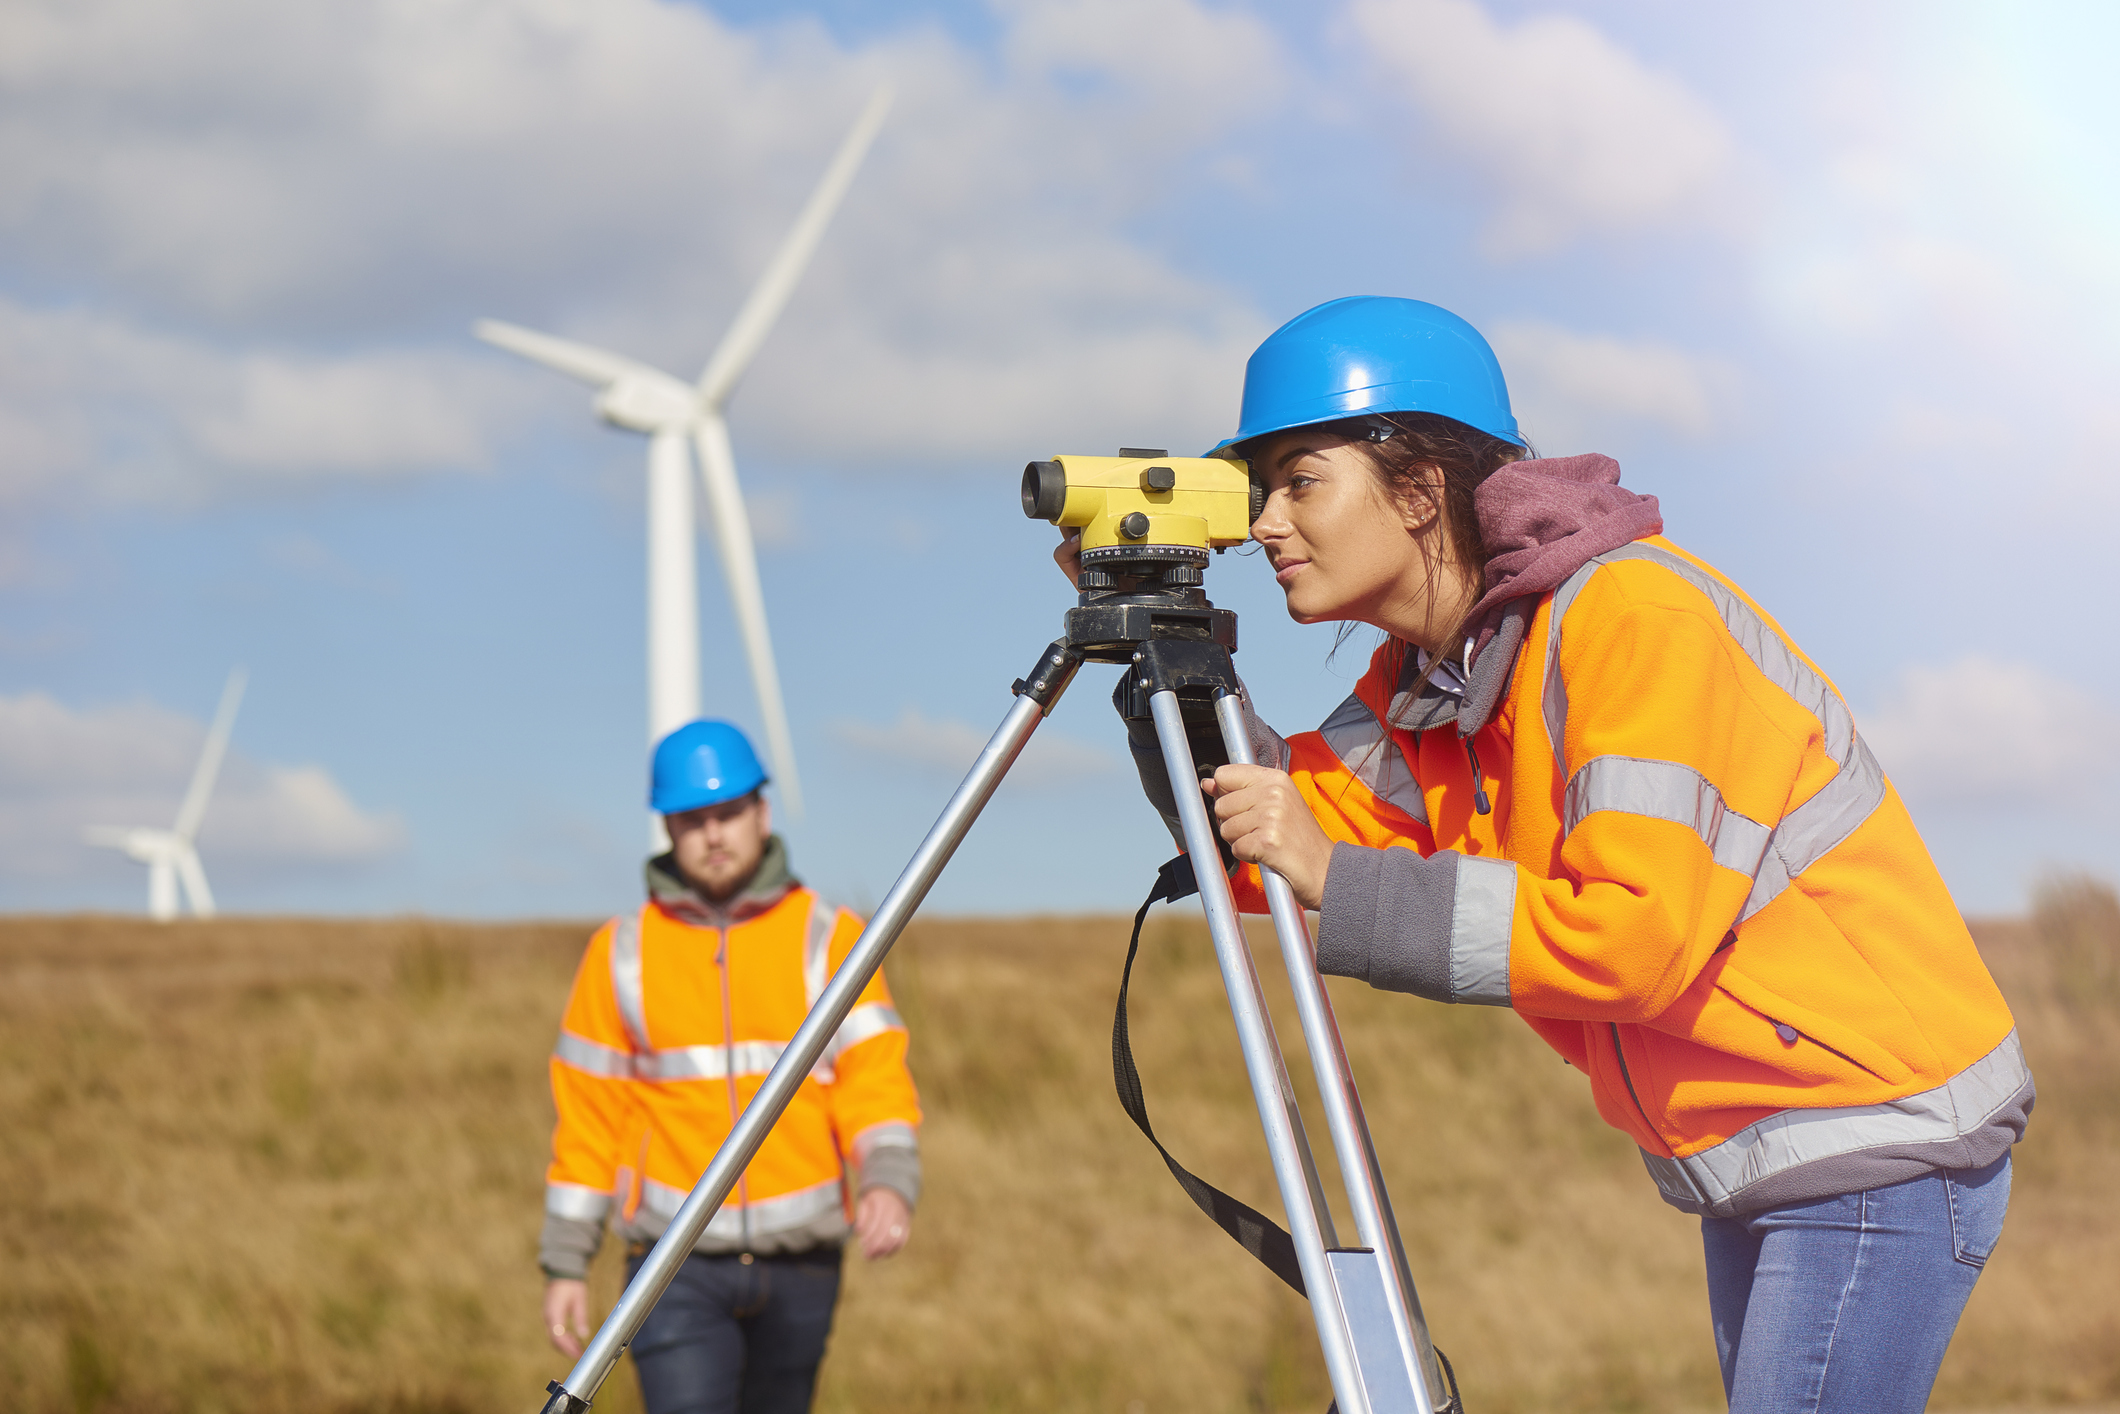 Female engineer wearing a hard hat and safety jacket, standing in front of windmills and using engineering equipment. Her male partner is standing behind her outside.